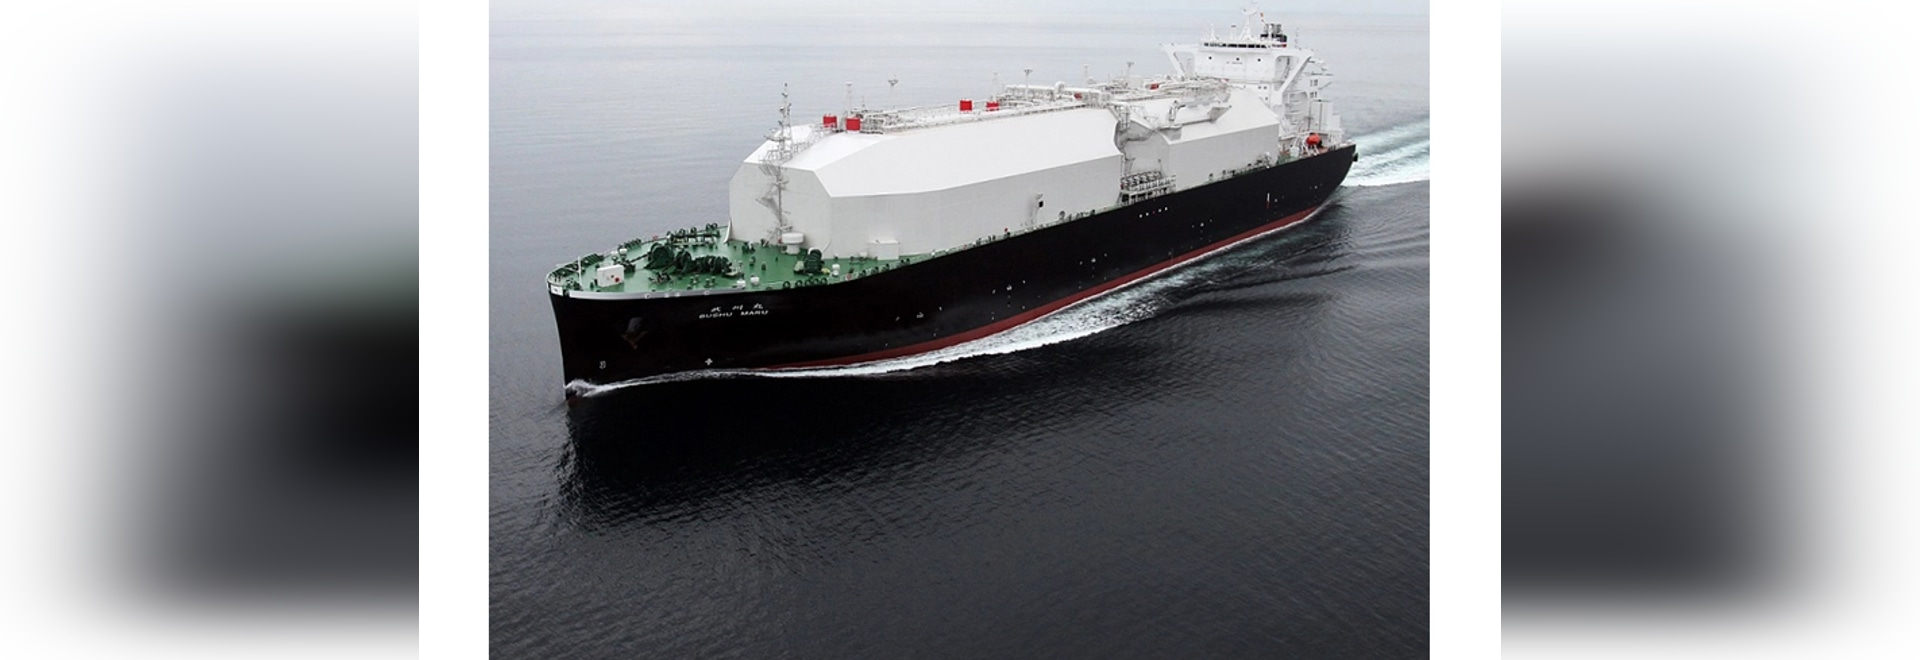 Beneath streamlined casing, Bushu Maru features apple-shaped LNG cargo tanks